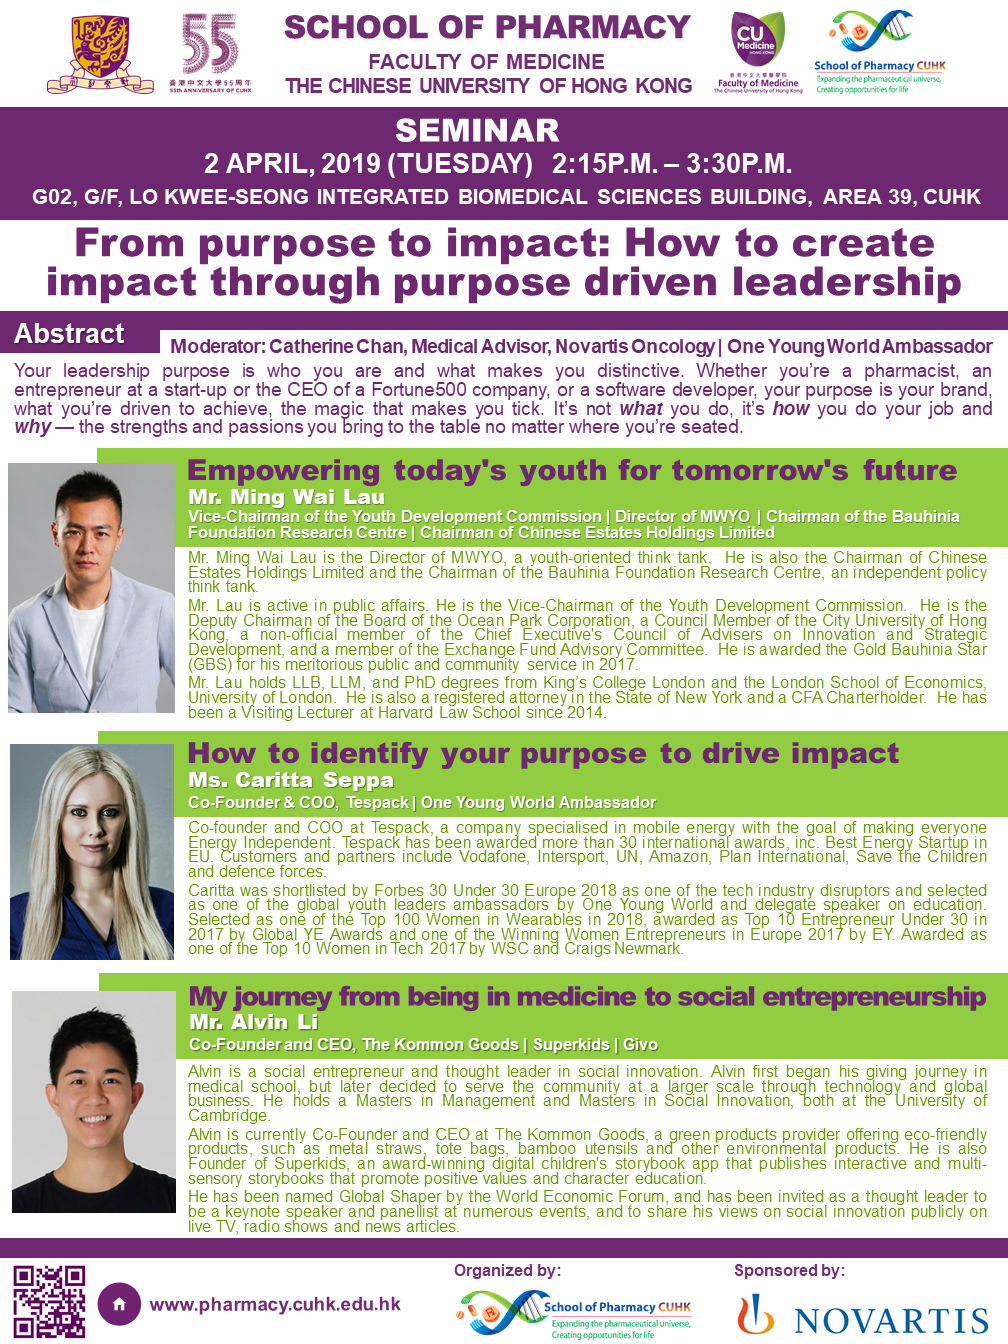 Seminar: From purpose to impact: How to create impact through purpose driven leadership @ G02, G/F, LO KWEE-SEONG INTEGRATED BIOMEDICAL SCIENCES BUILDING, AREA 39, CUHK